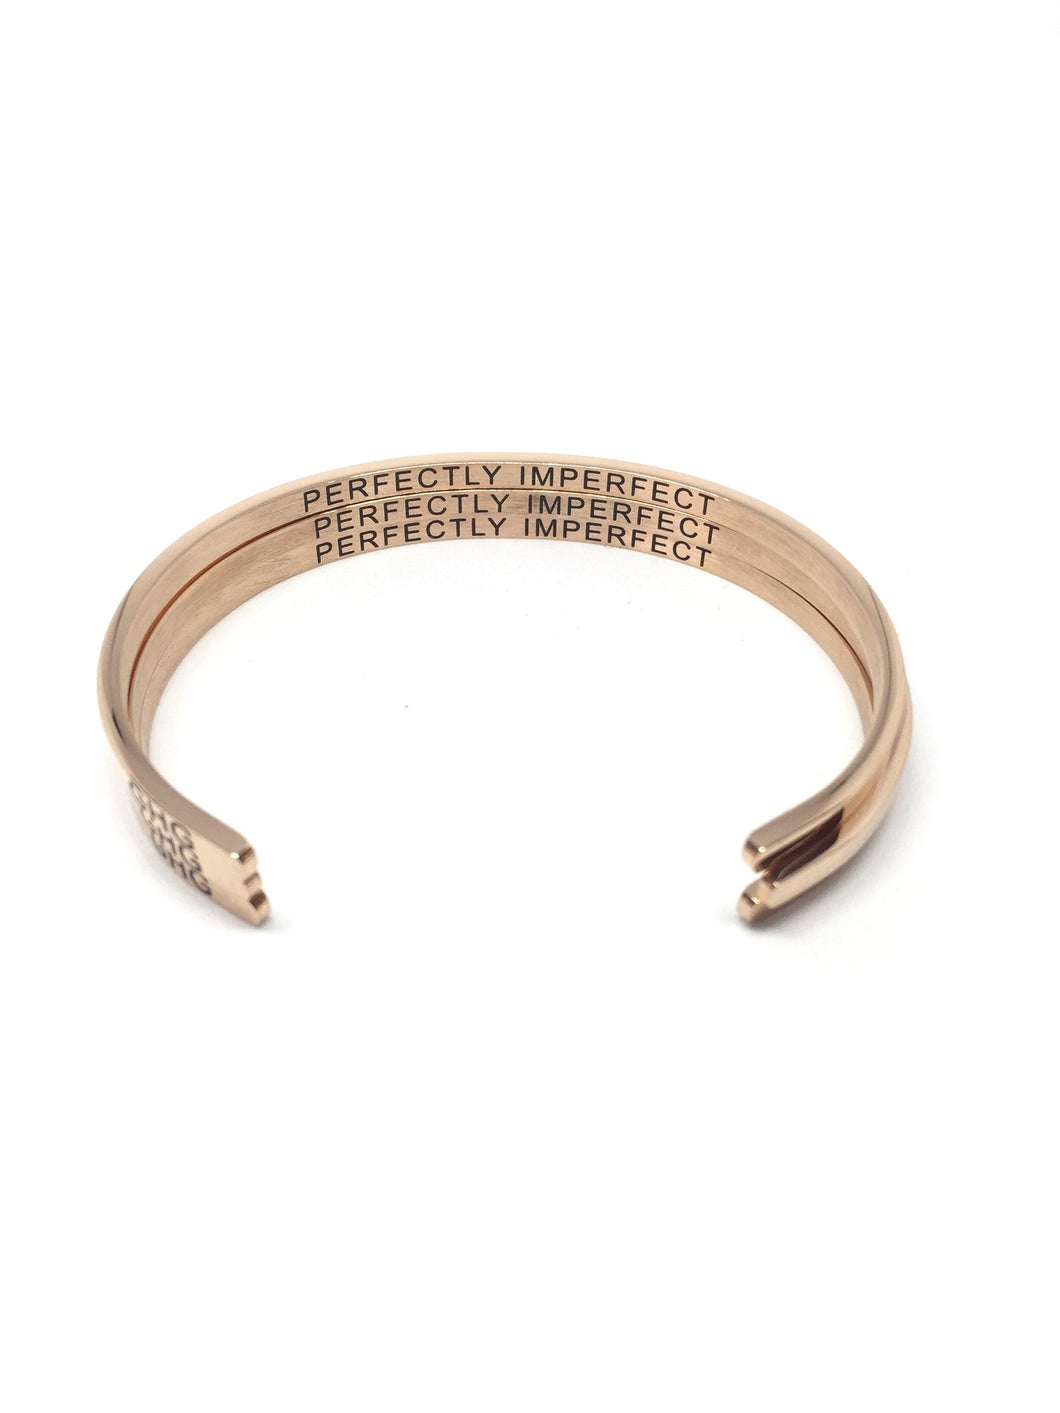 Perfectly Imperfect Bangle